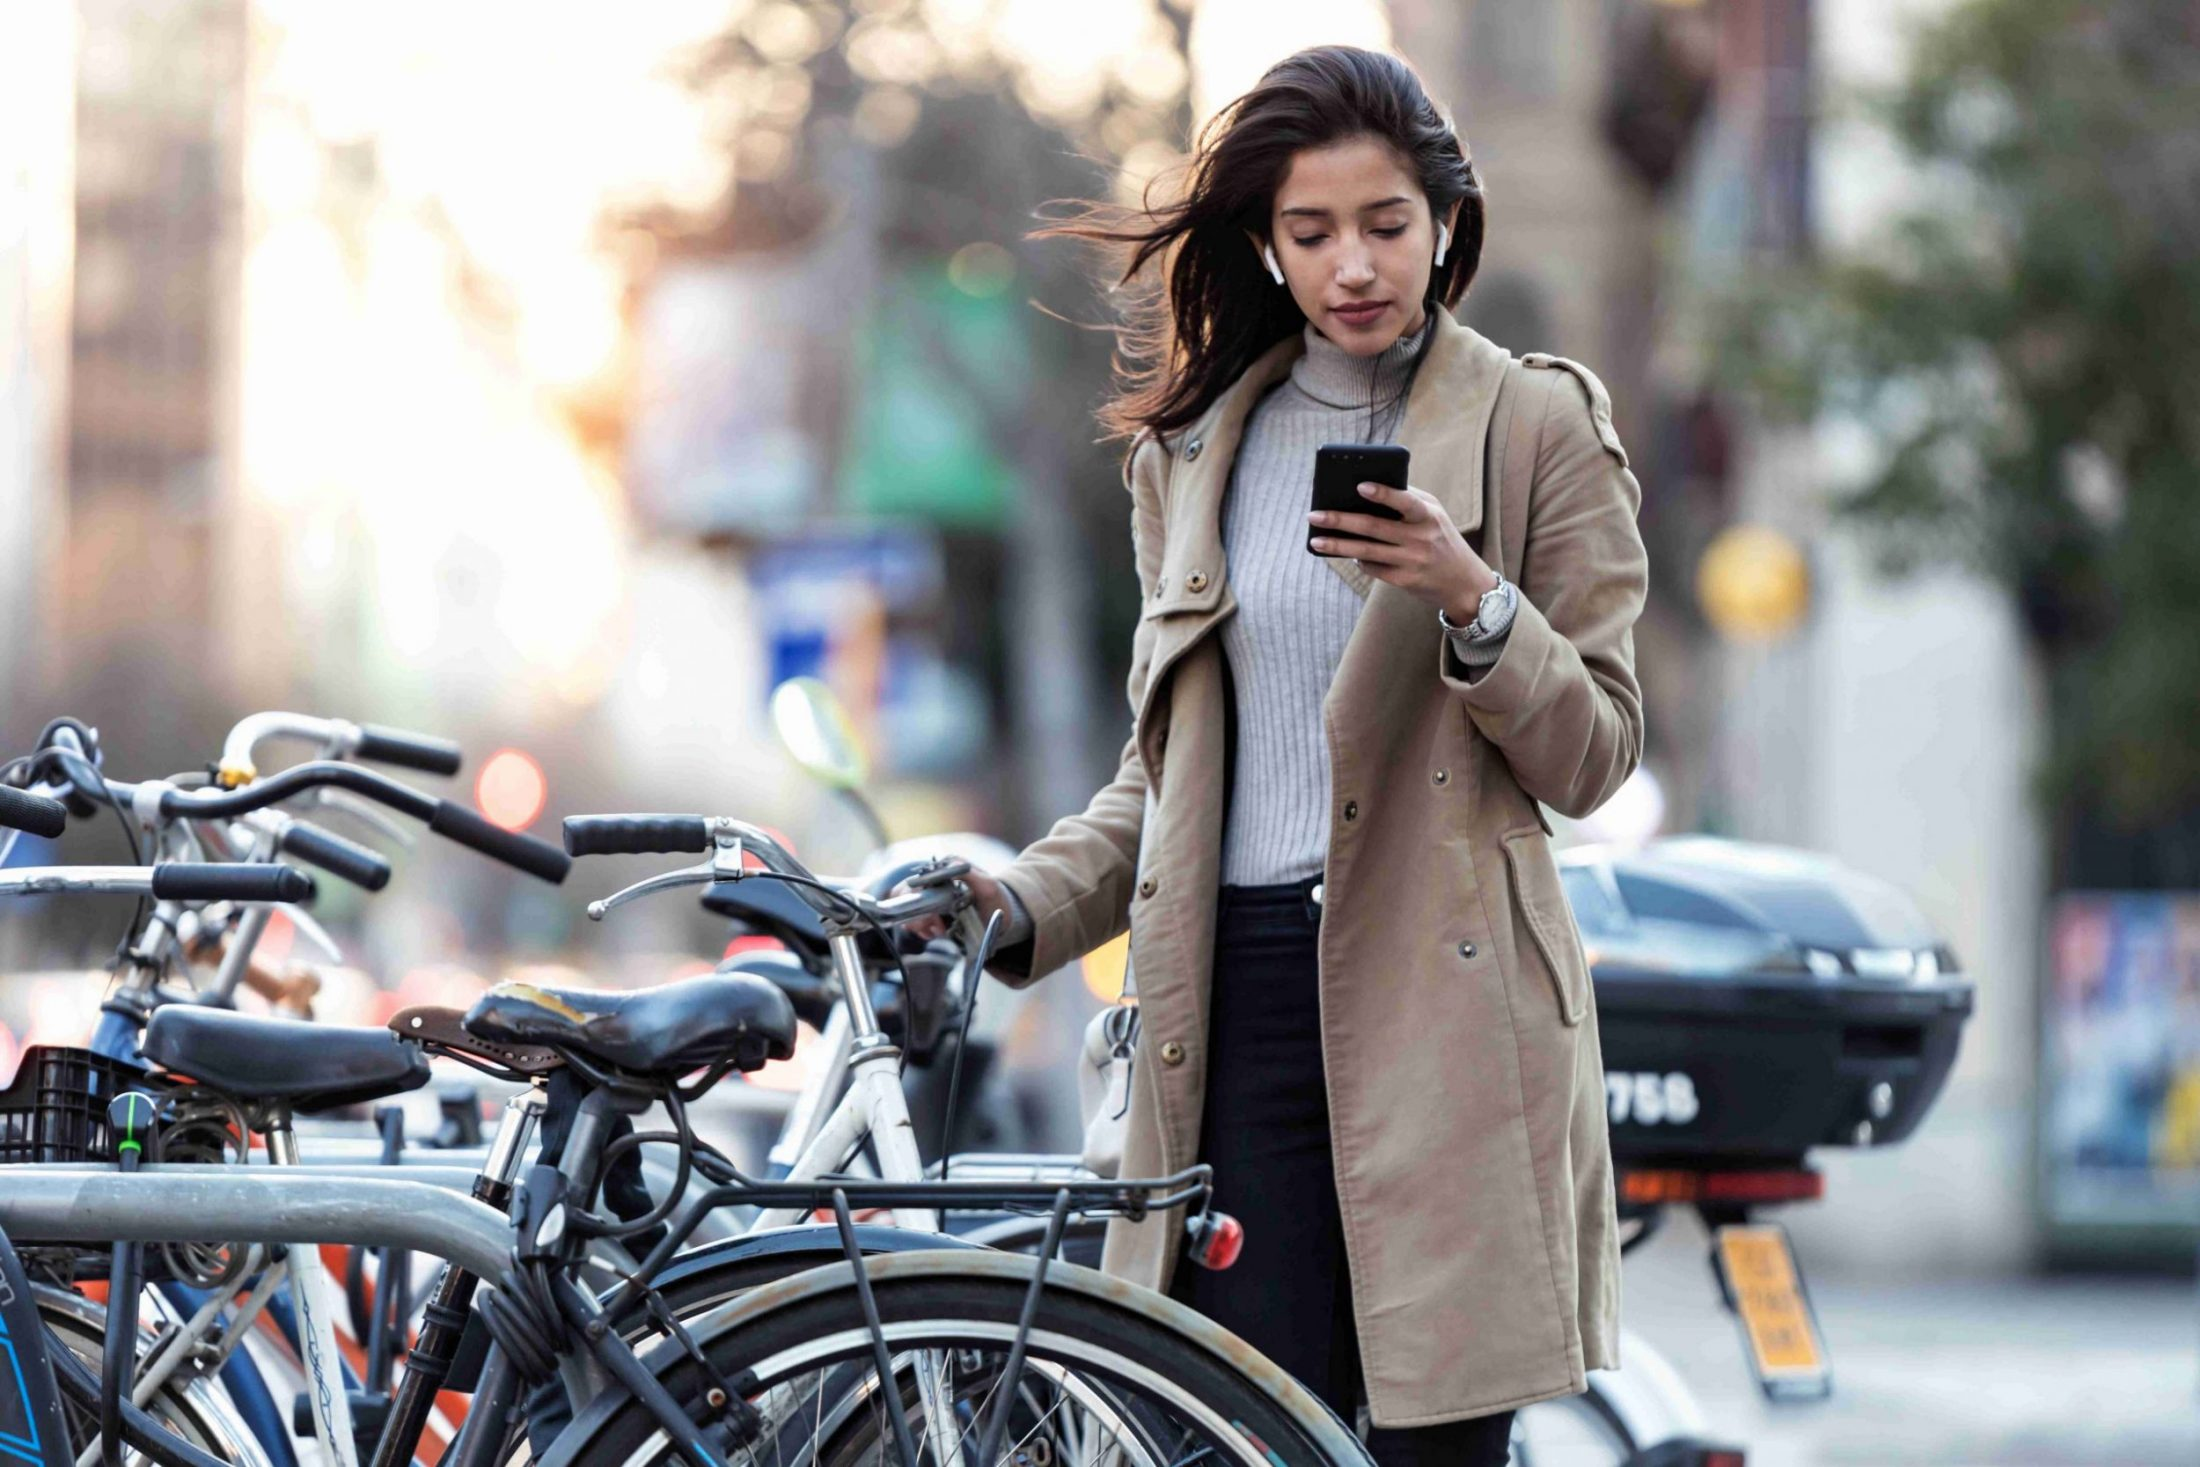 Shot of pretty young woman consulting the map on her mobile phone before taking the bicycle on the street.